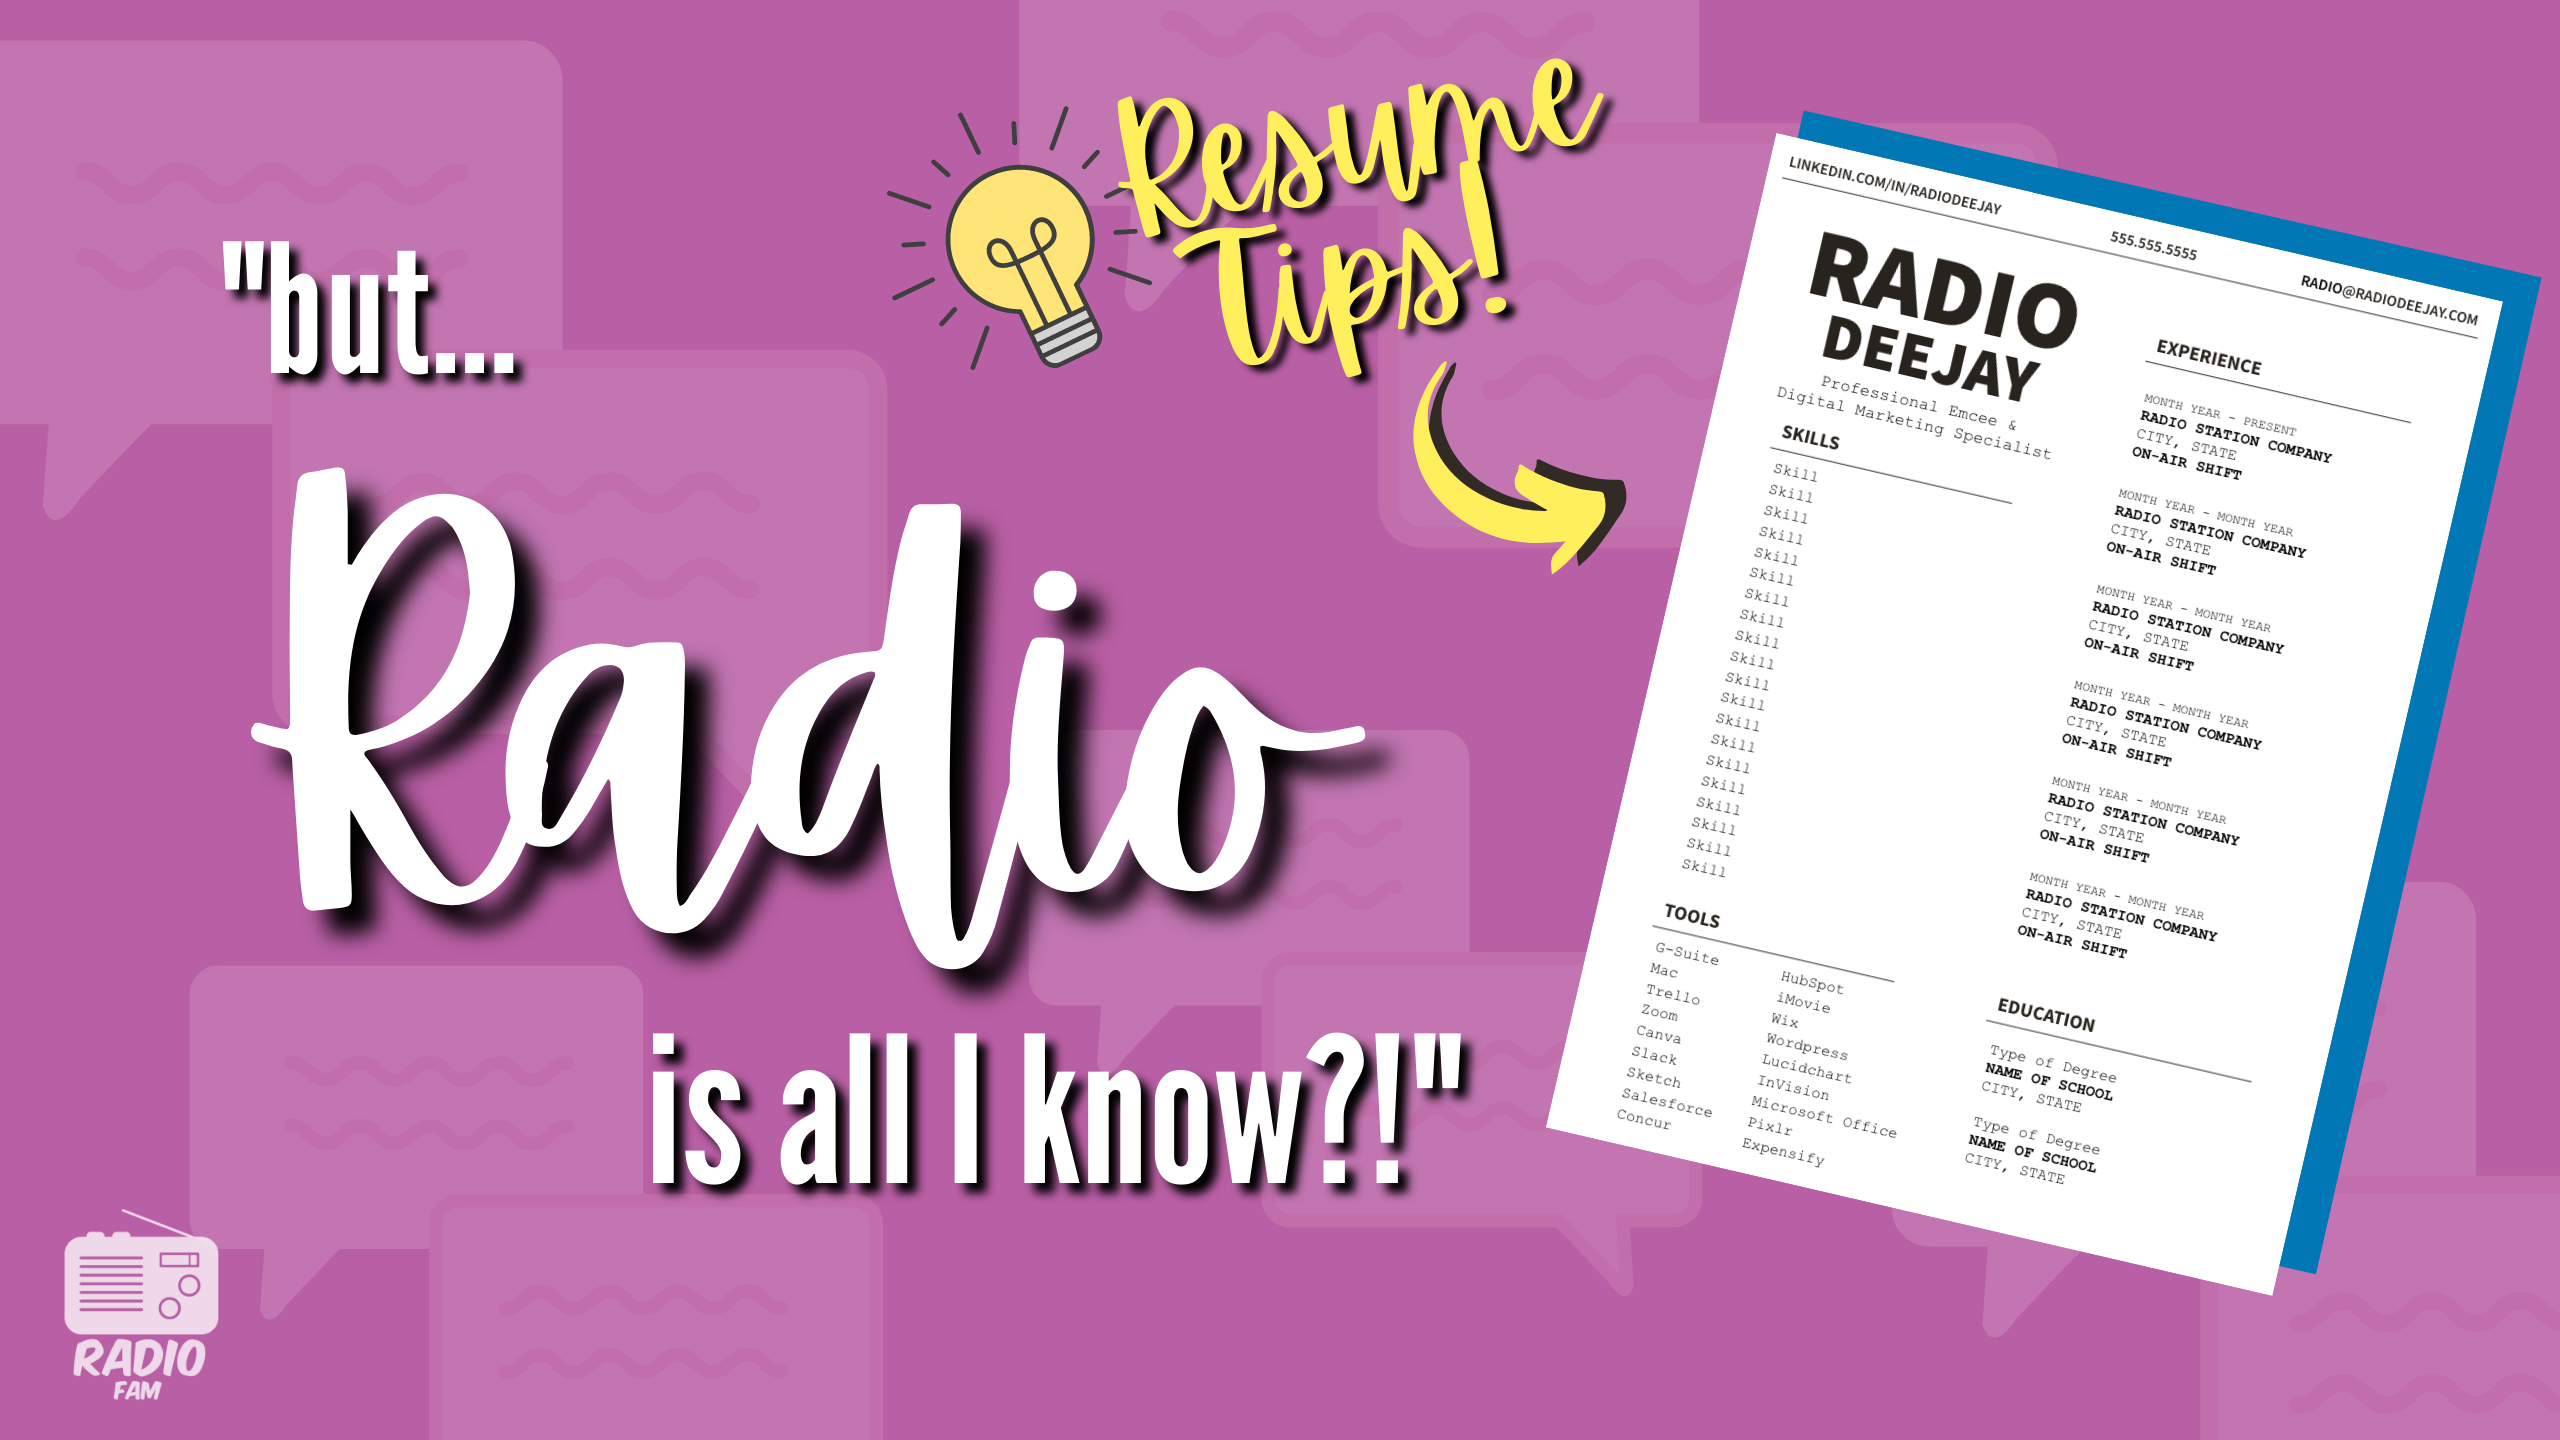 """""""But RADIO is ALL I Know?!"""" RESUME TIPS!"""